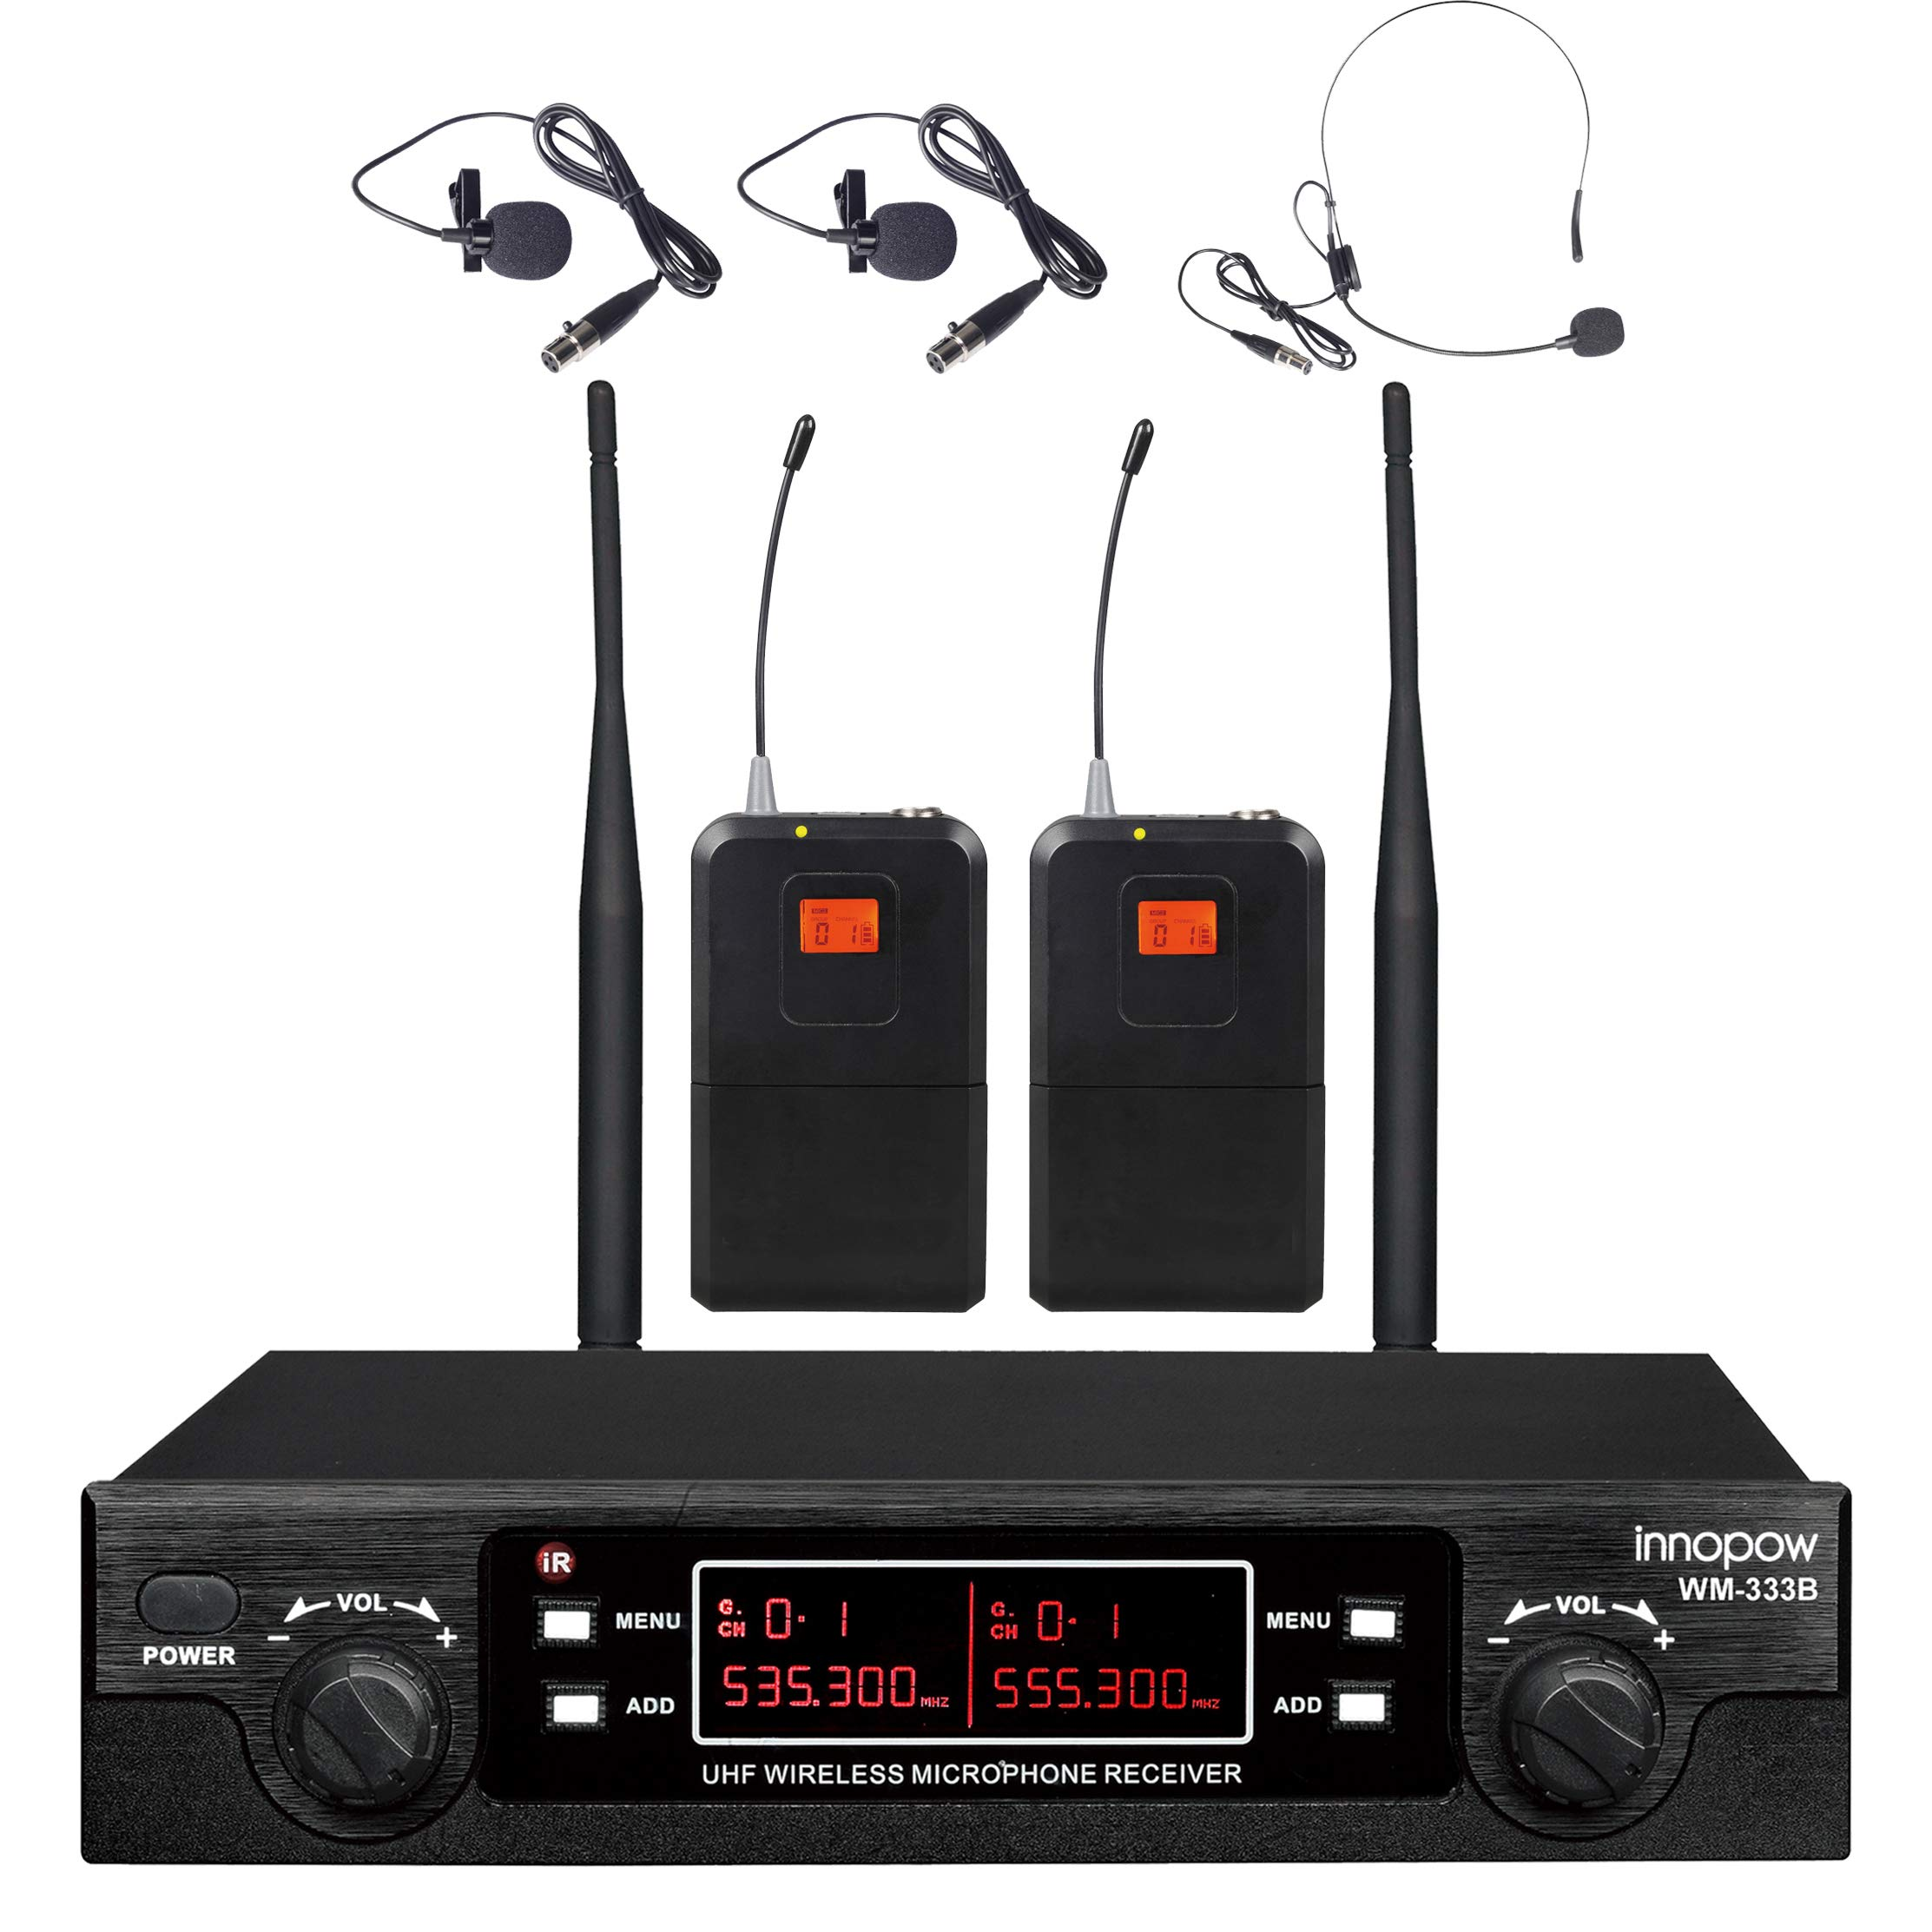 innopow 80-Channel Dual UHF Wireless Microphone System,inp cordless mic set,1 Headset& 2 Lapel Lavalier Microphone, Long Distance 200-240Ft Prevent Interference,16 Hours Use for Church, Weddings